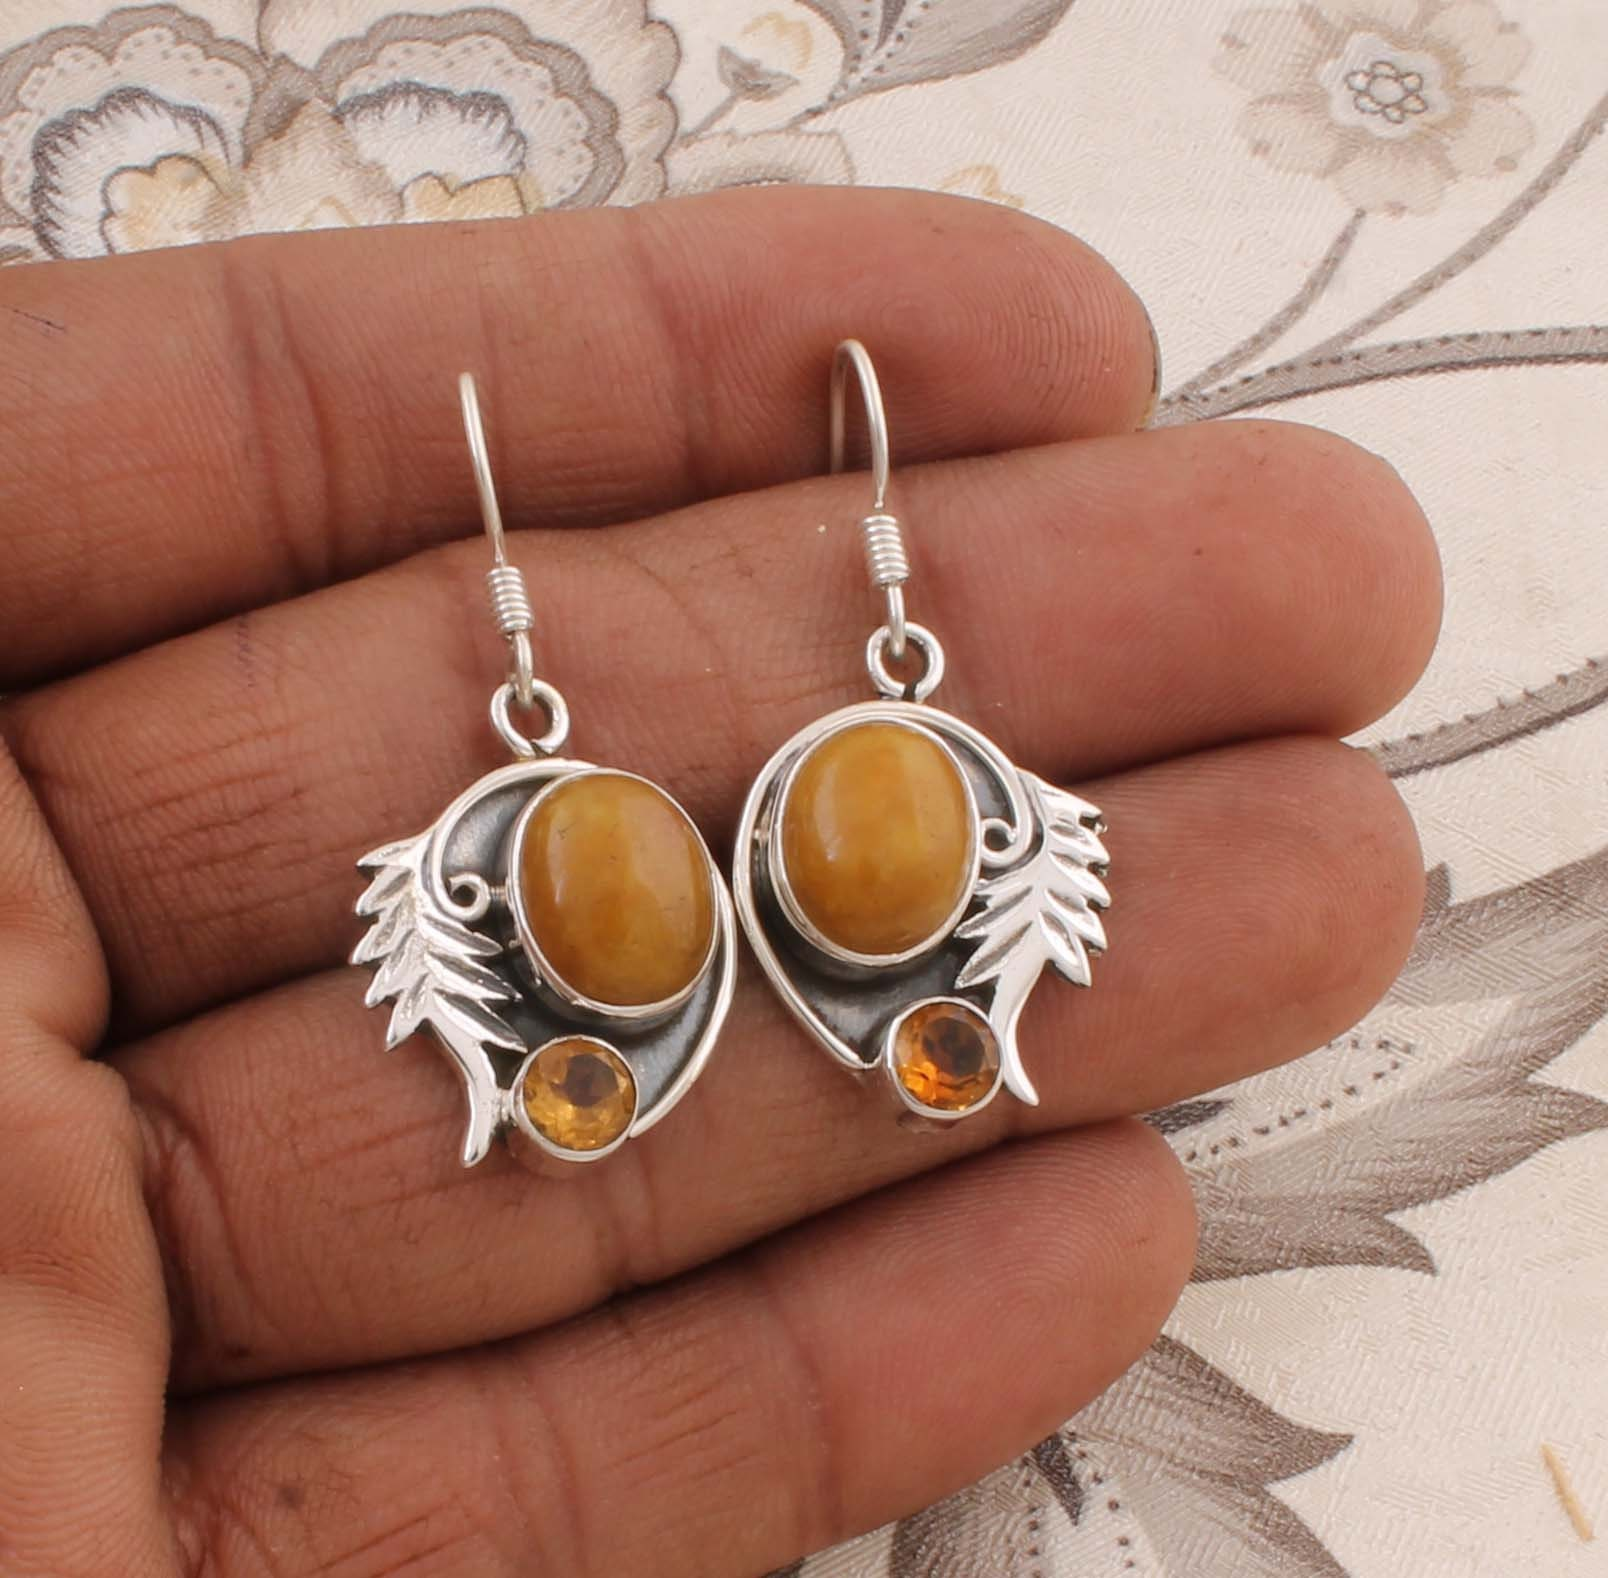 Natural Larimar Top Quality Gemstone Earring,Boho Earring 925-Sterling Silver Earring,Foral Earring,Antique Silver Earring Gift For Him